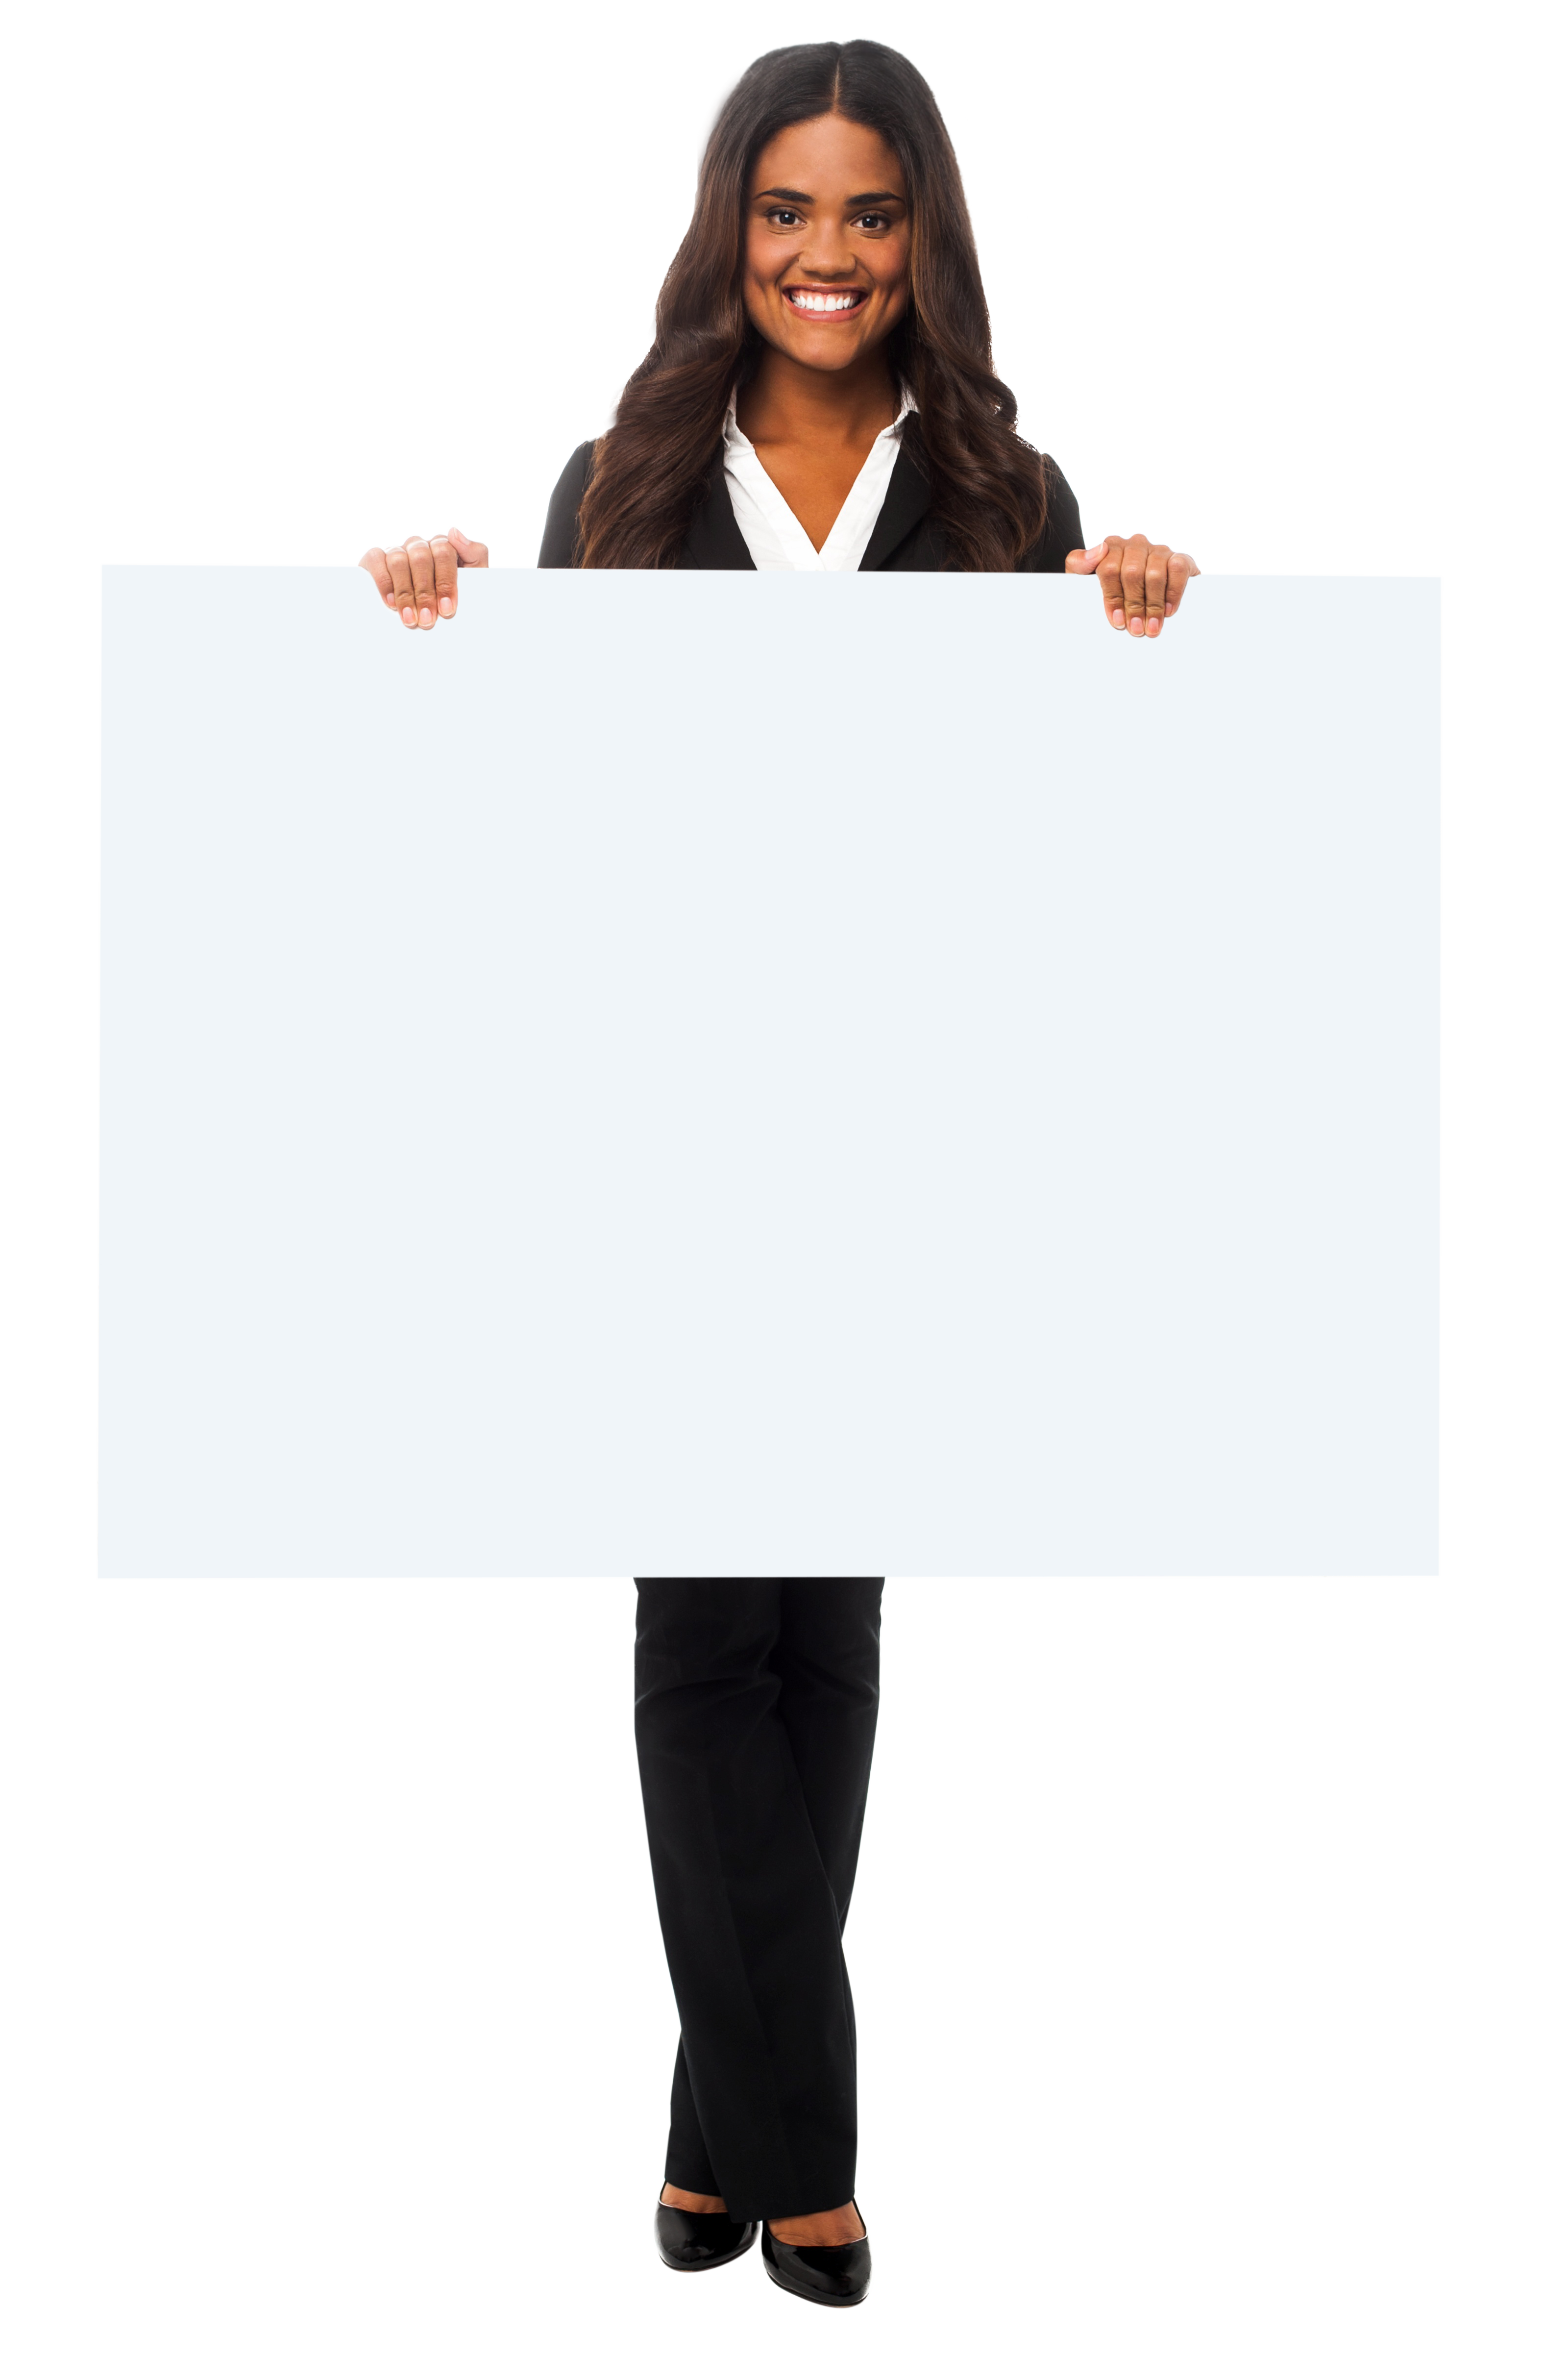 Girl Holding Banner Png Image Girl Image Png Images